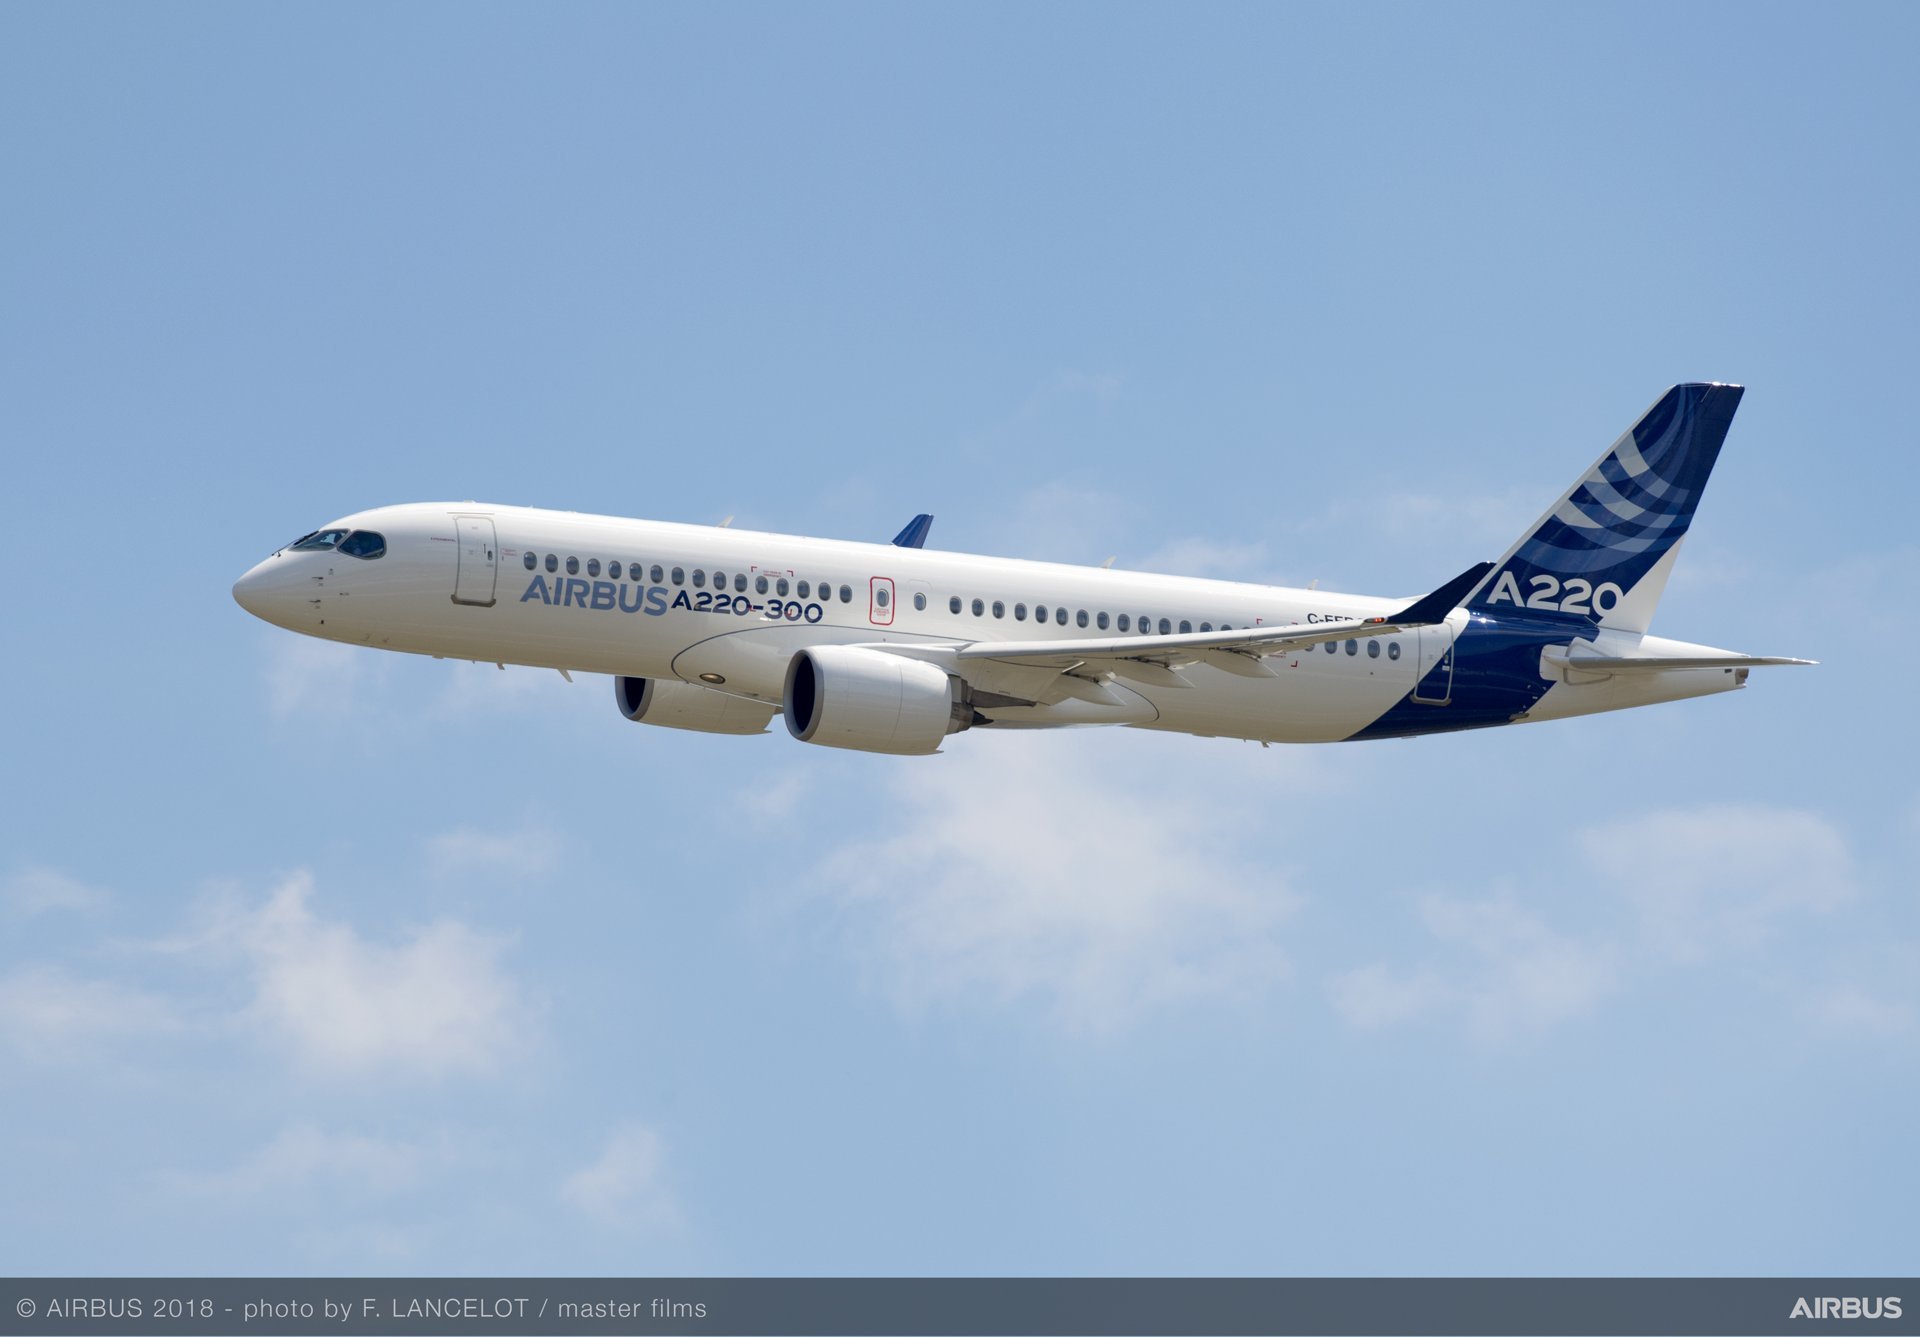 A220 reveal: first arrival in Airbus livery